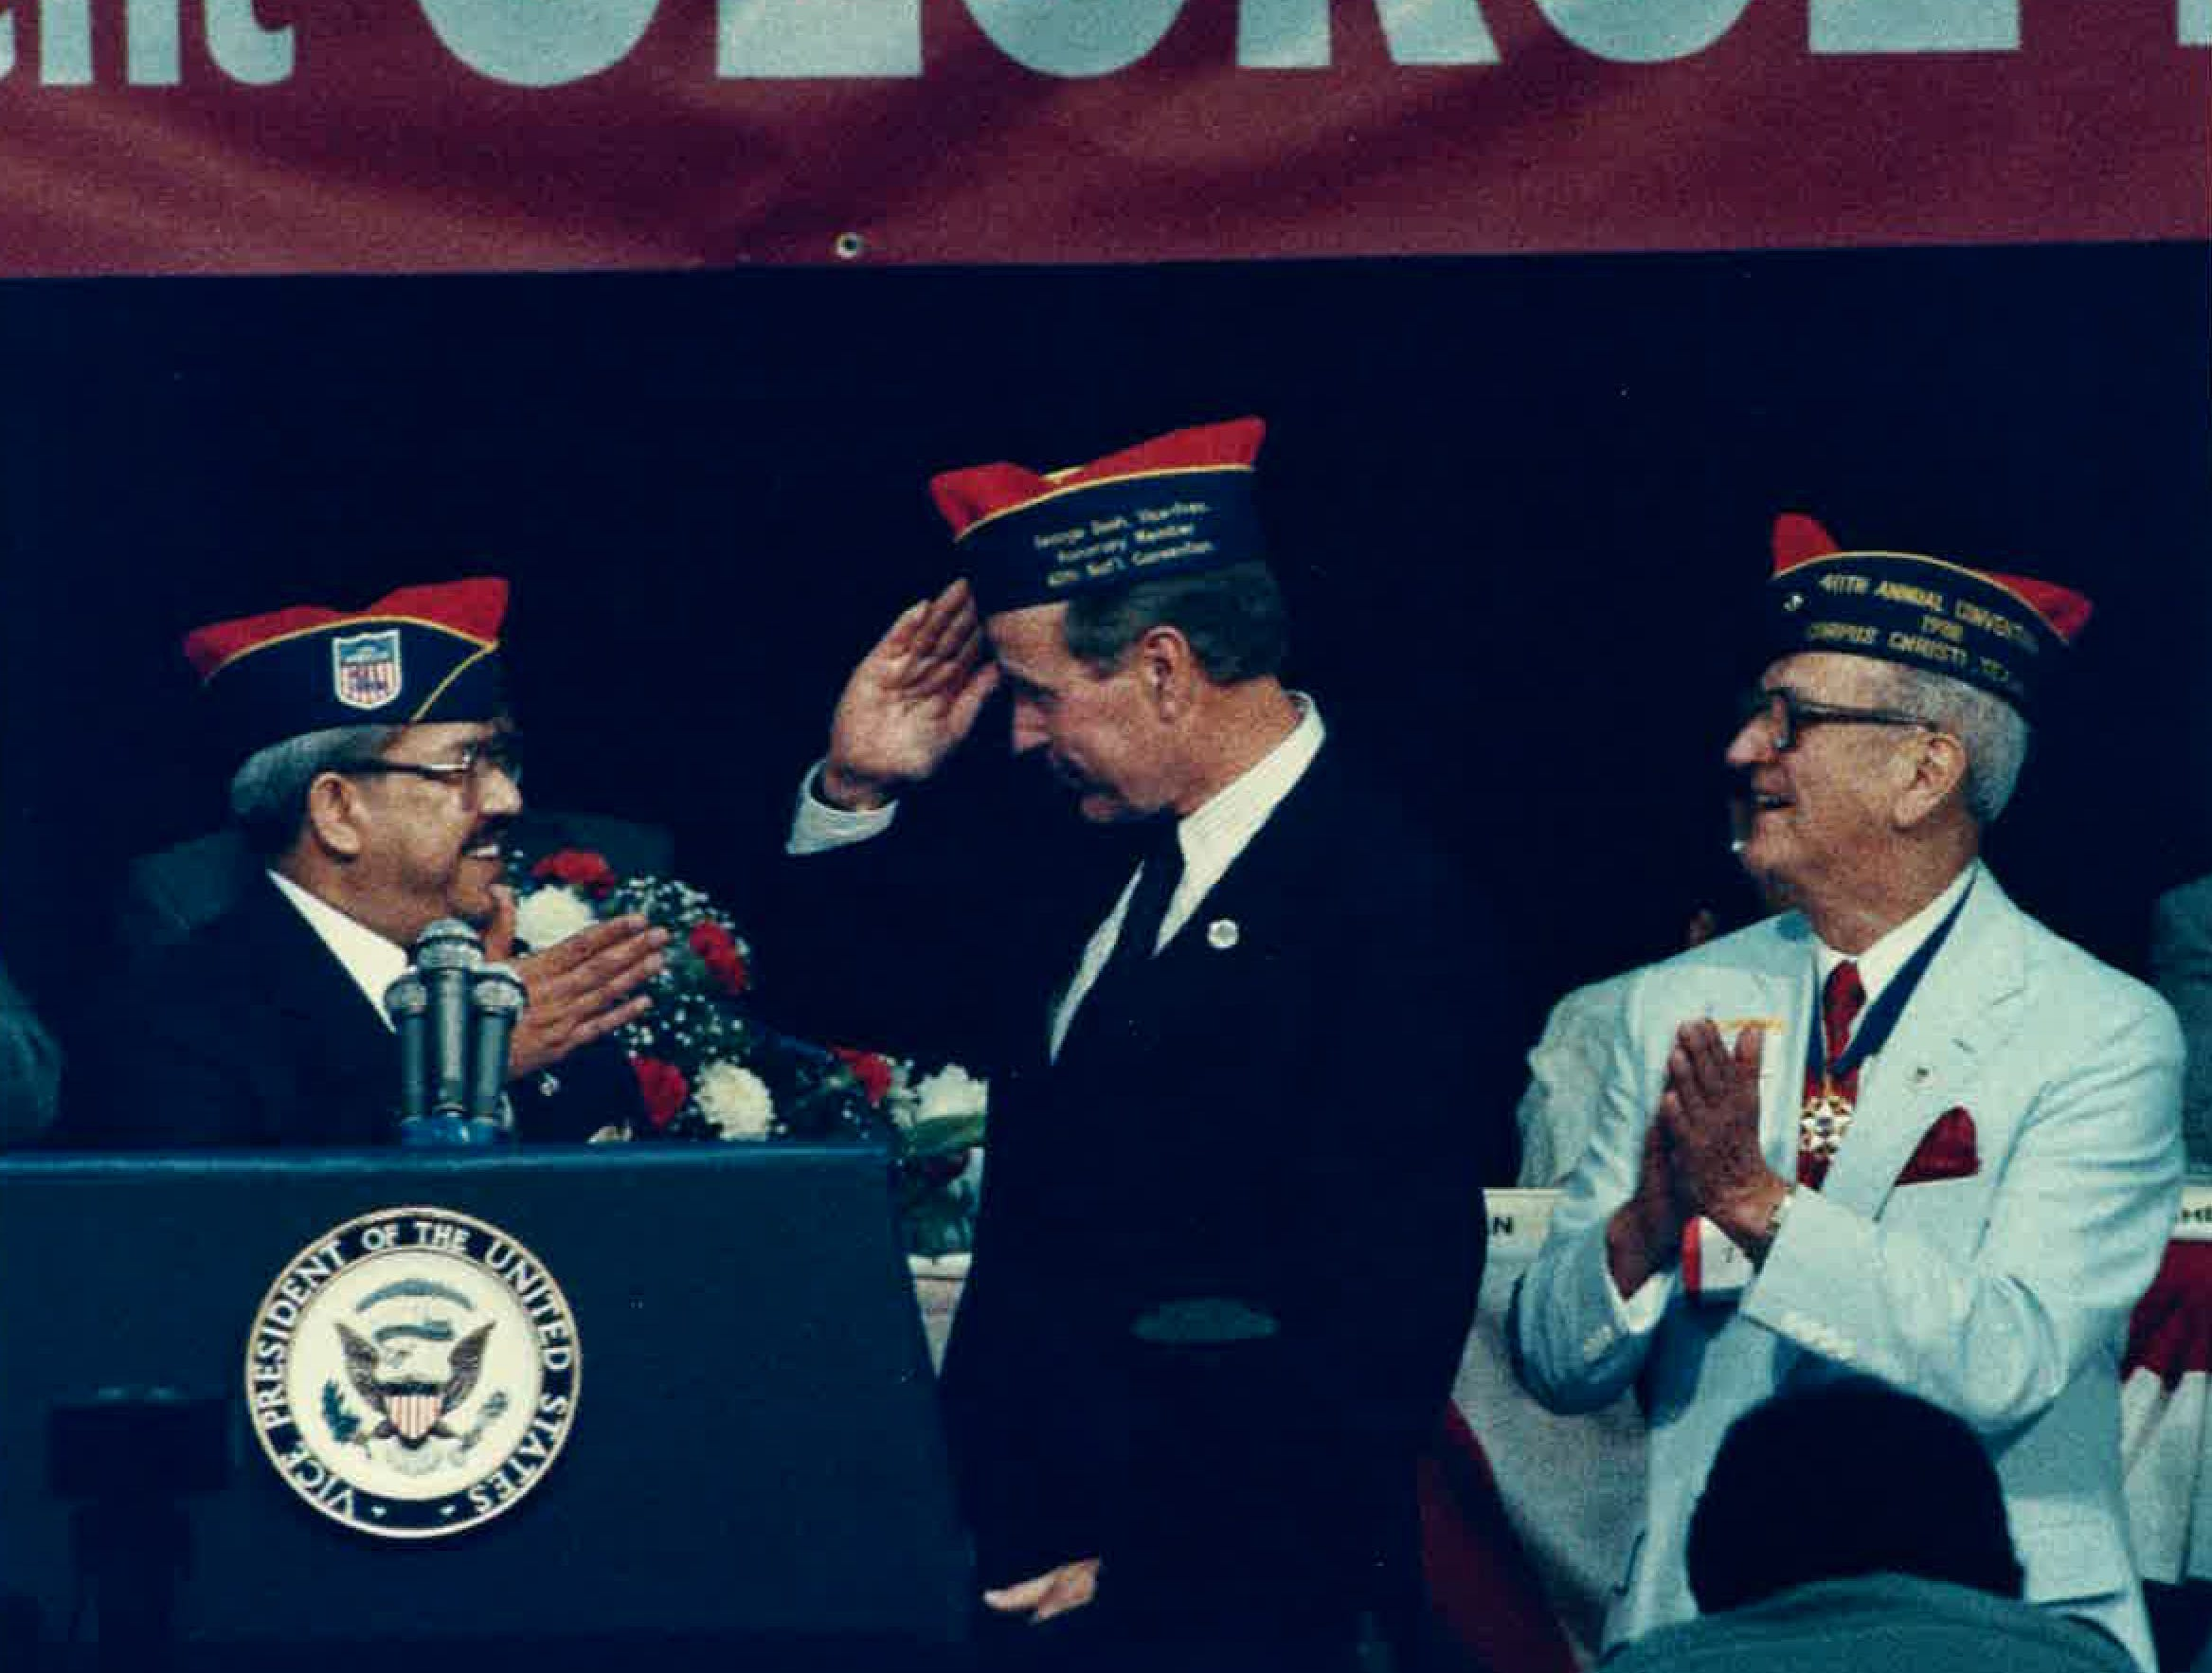 Vice President George H.W. Bush (center) salutes National Chairman of the American G.I. Forum Mario Diaz (left) as GI Forum founder Dr. Hector P. Garcia looks on. Bush was in town for the national convention of the American GI Forum in August 1988.